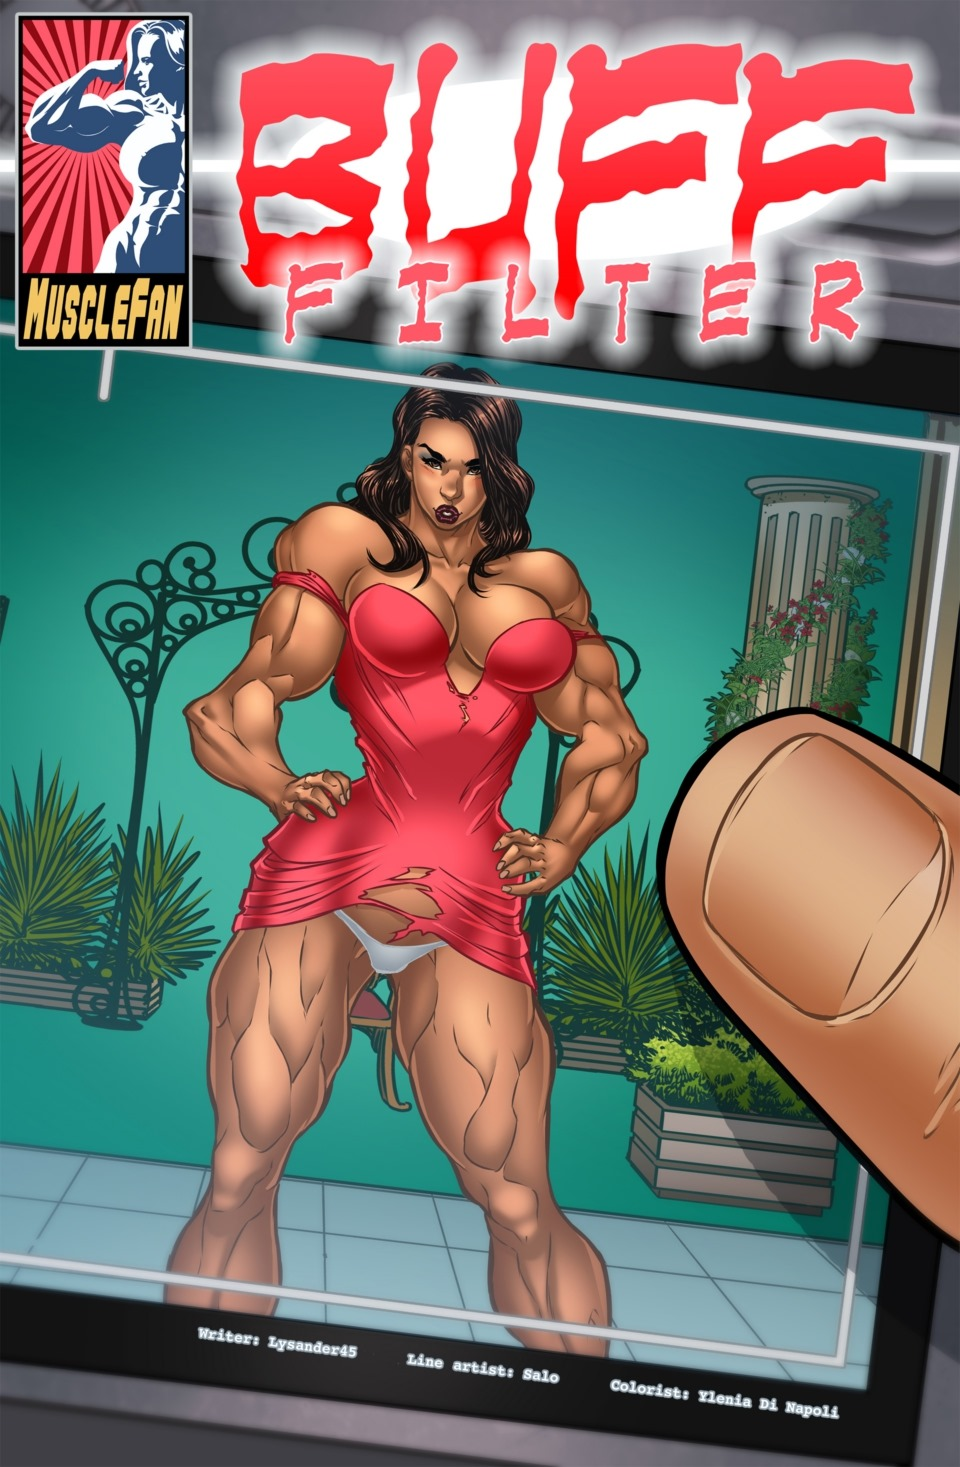 Musclefan- Buff Filter porn comics 8 muses